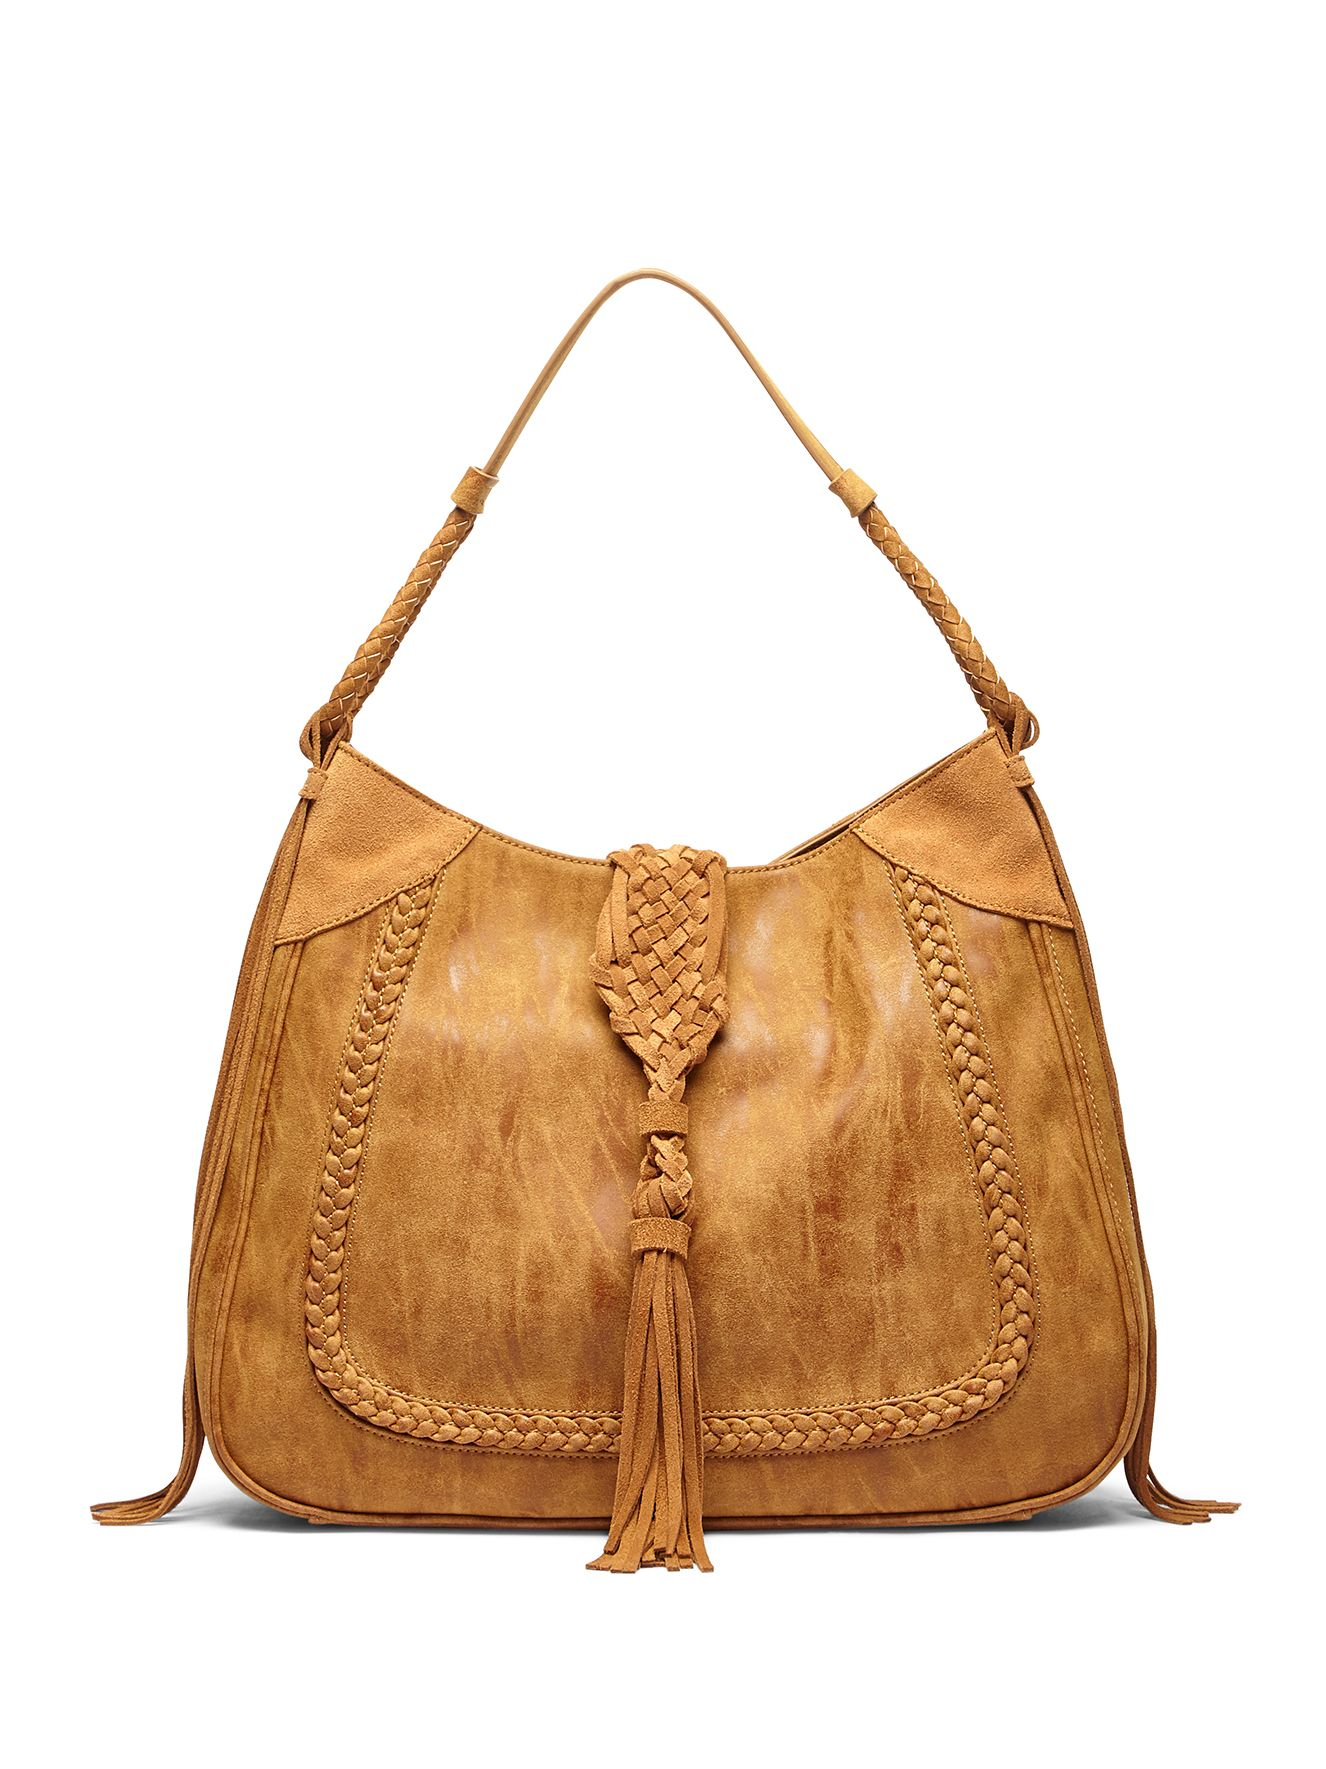 Braided shoulder bag with suede tassels in camel | Sole Society Vail